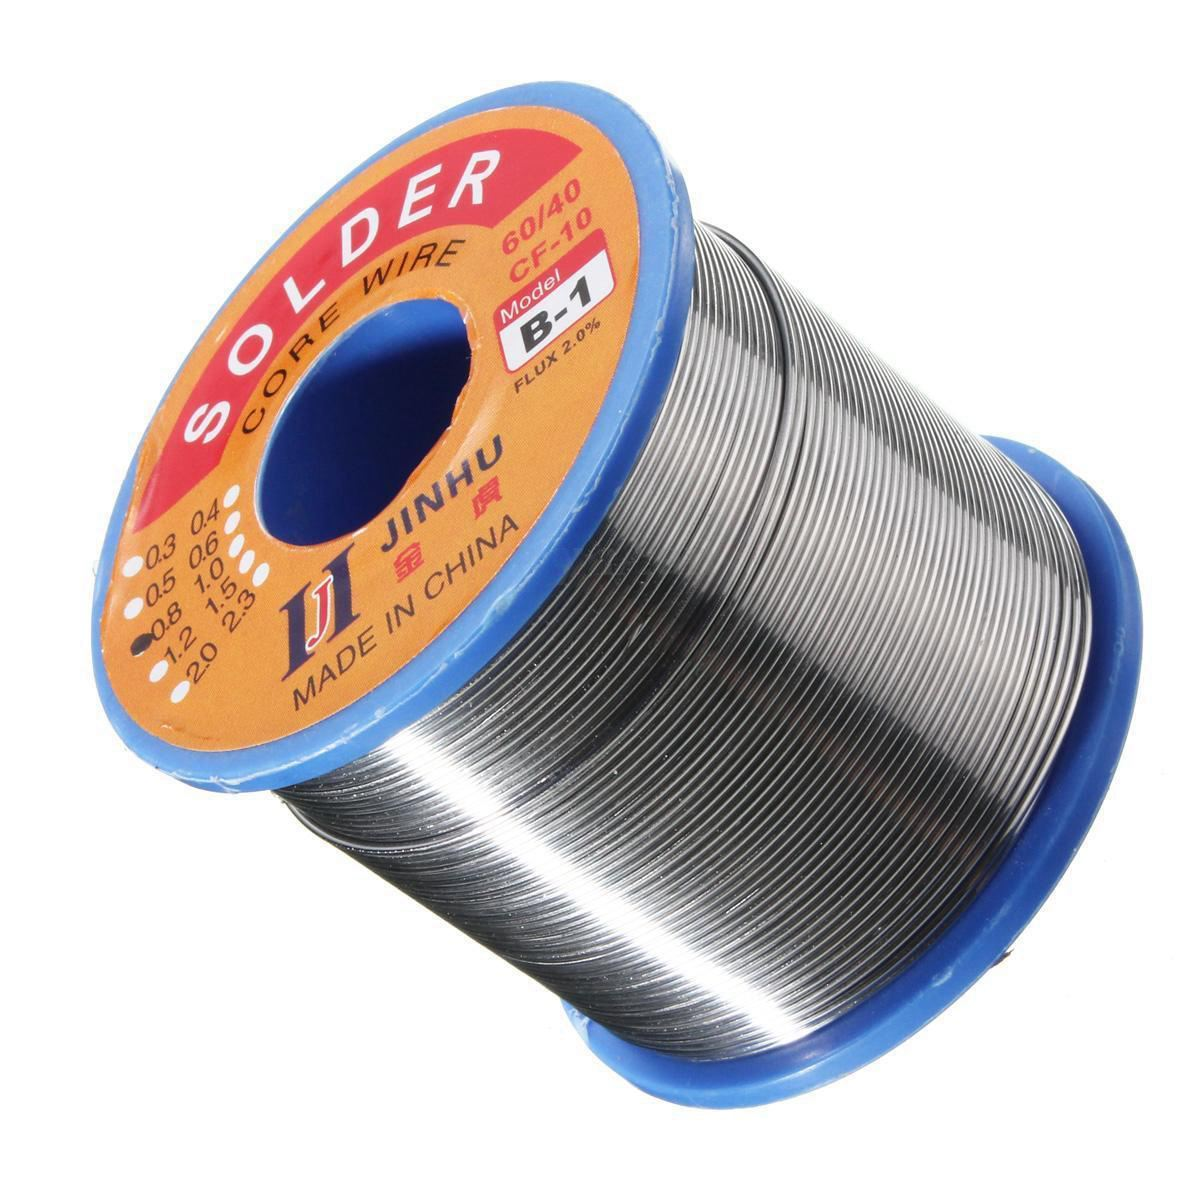 купить 500g 60/40 Tin lead Solder Wire Rosin Core Soldering 2% Flux, 0.7Mm 1 Reel по цене 789.54 рублей